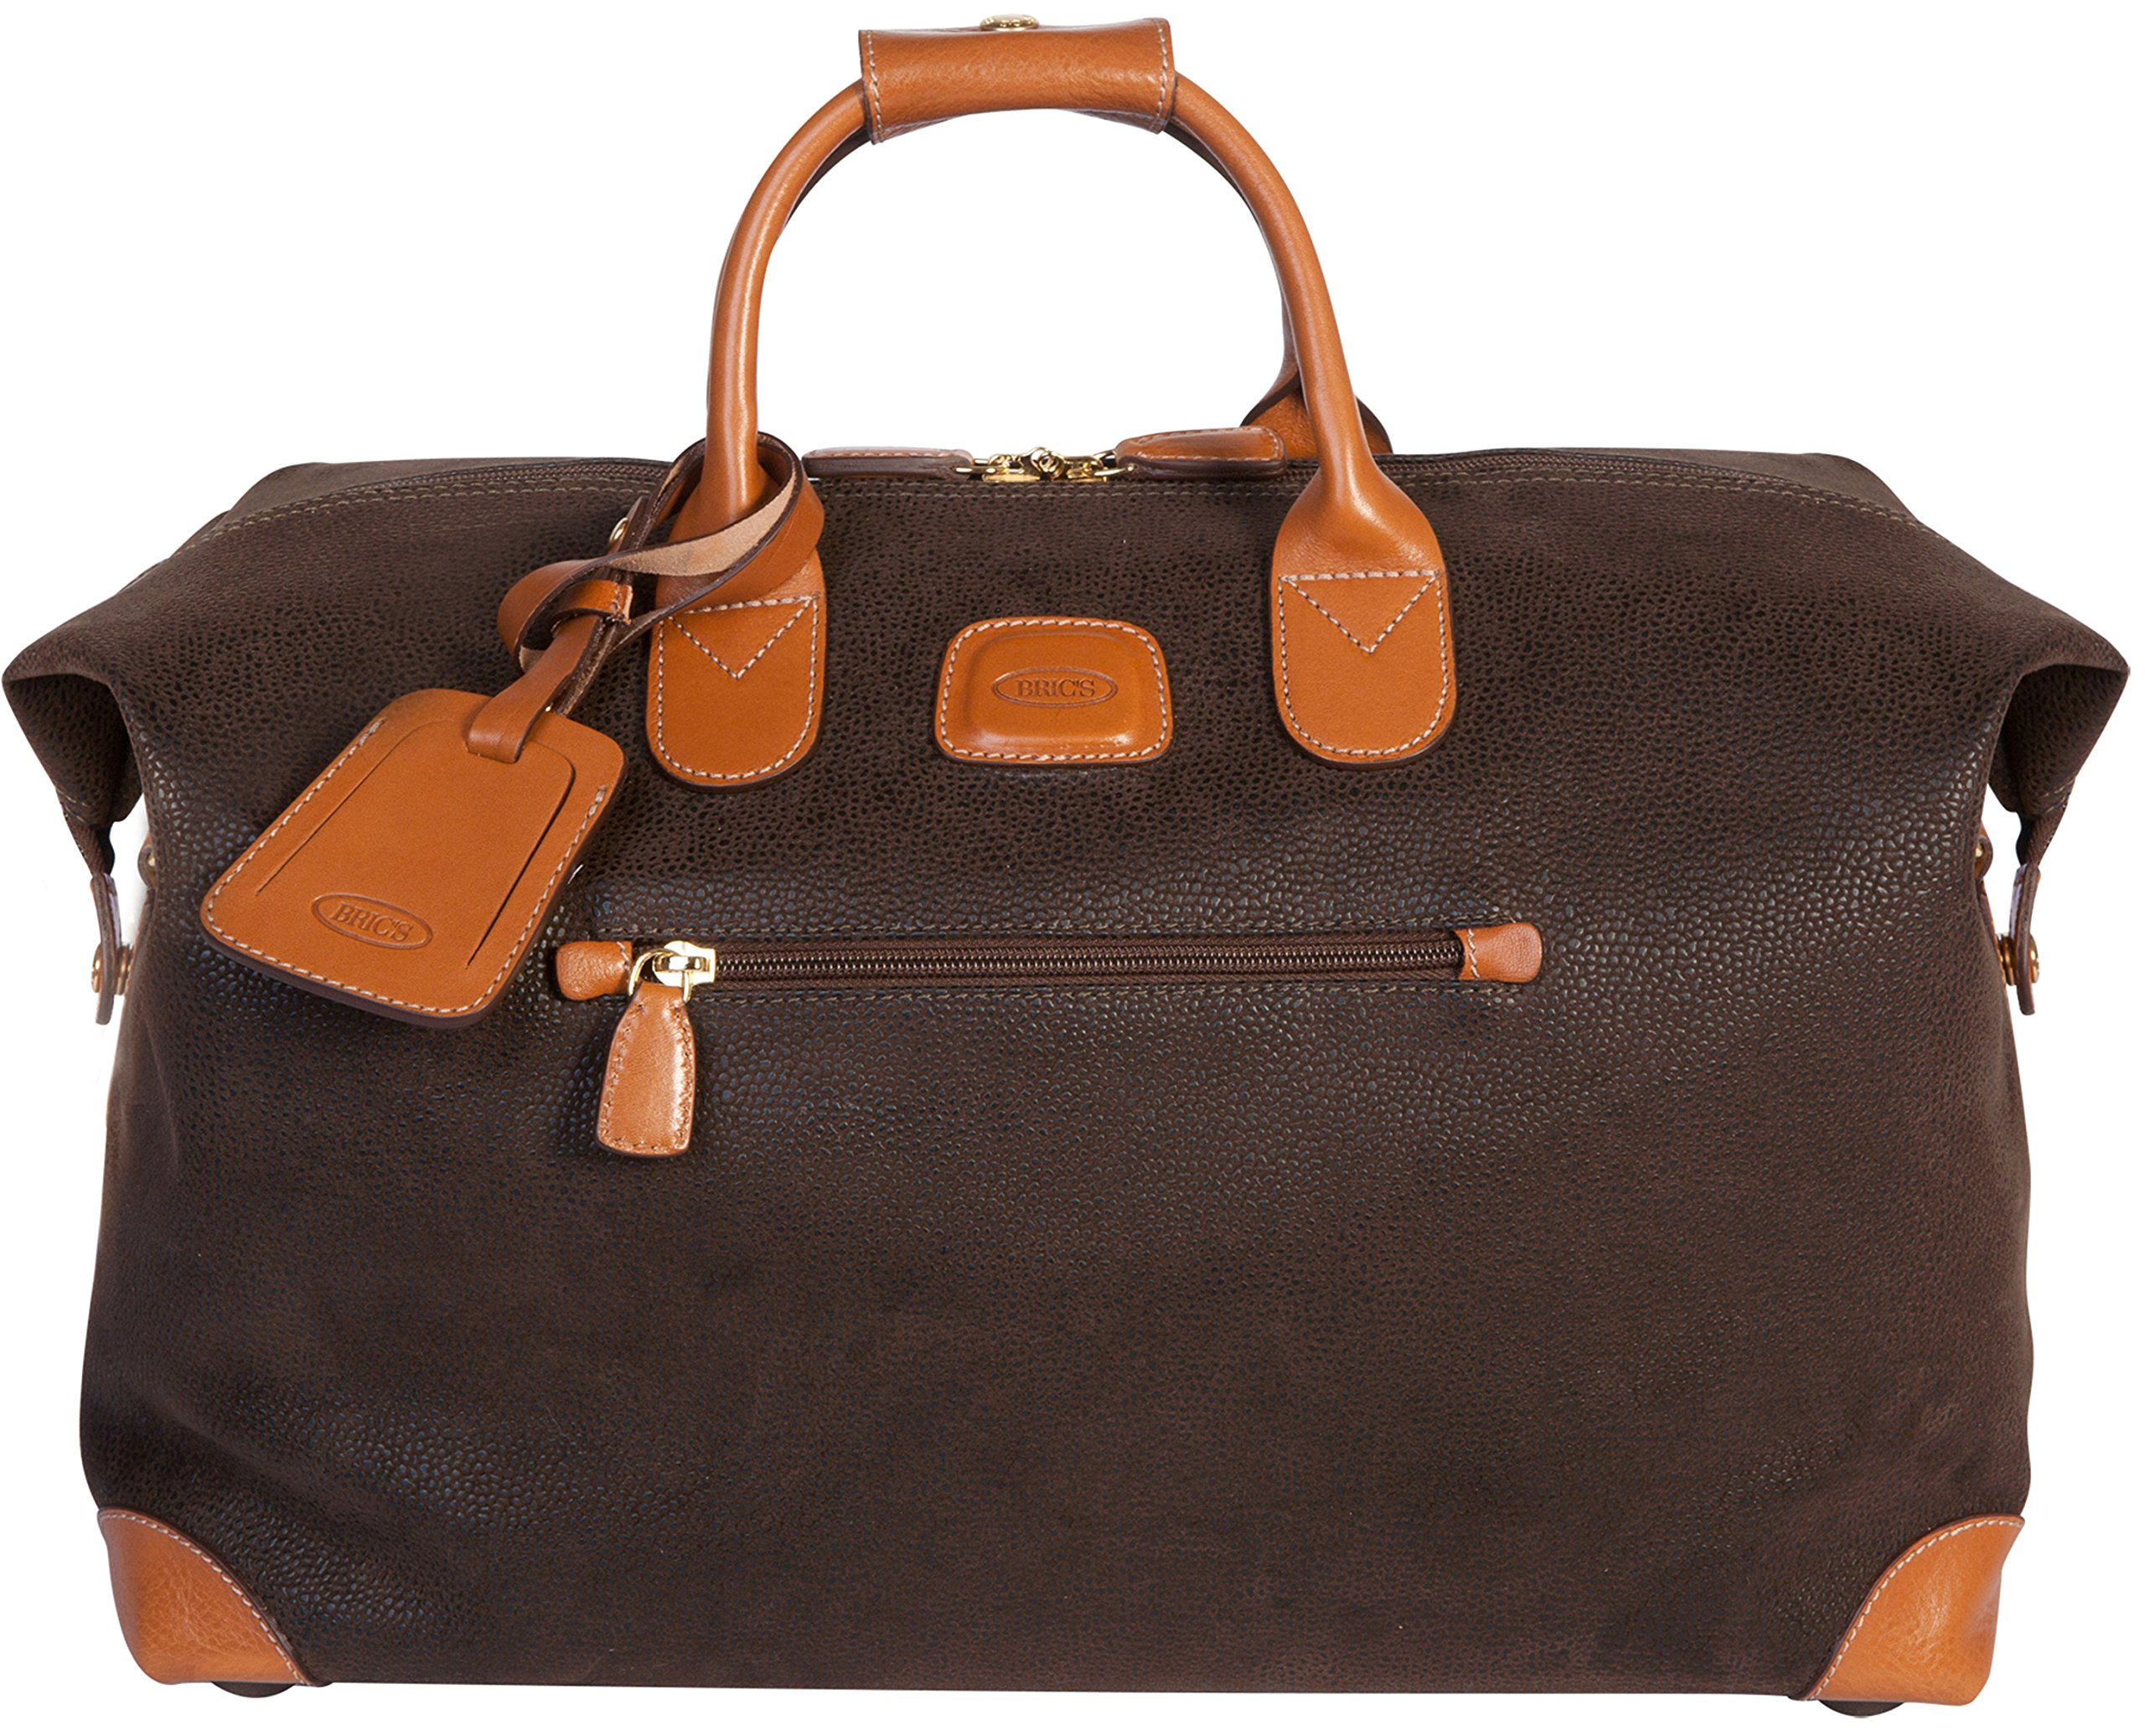 Bric's Luggage Life 18 Inch Cargo Duffle (Brown)